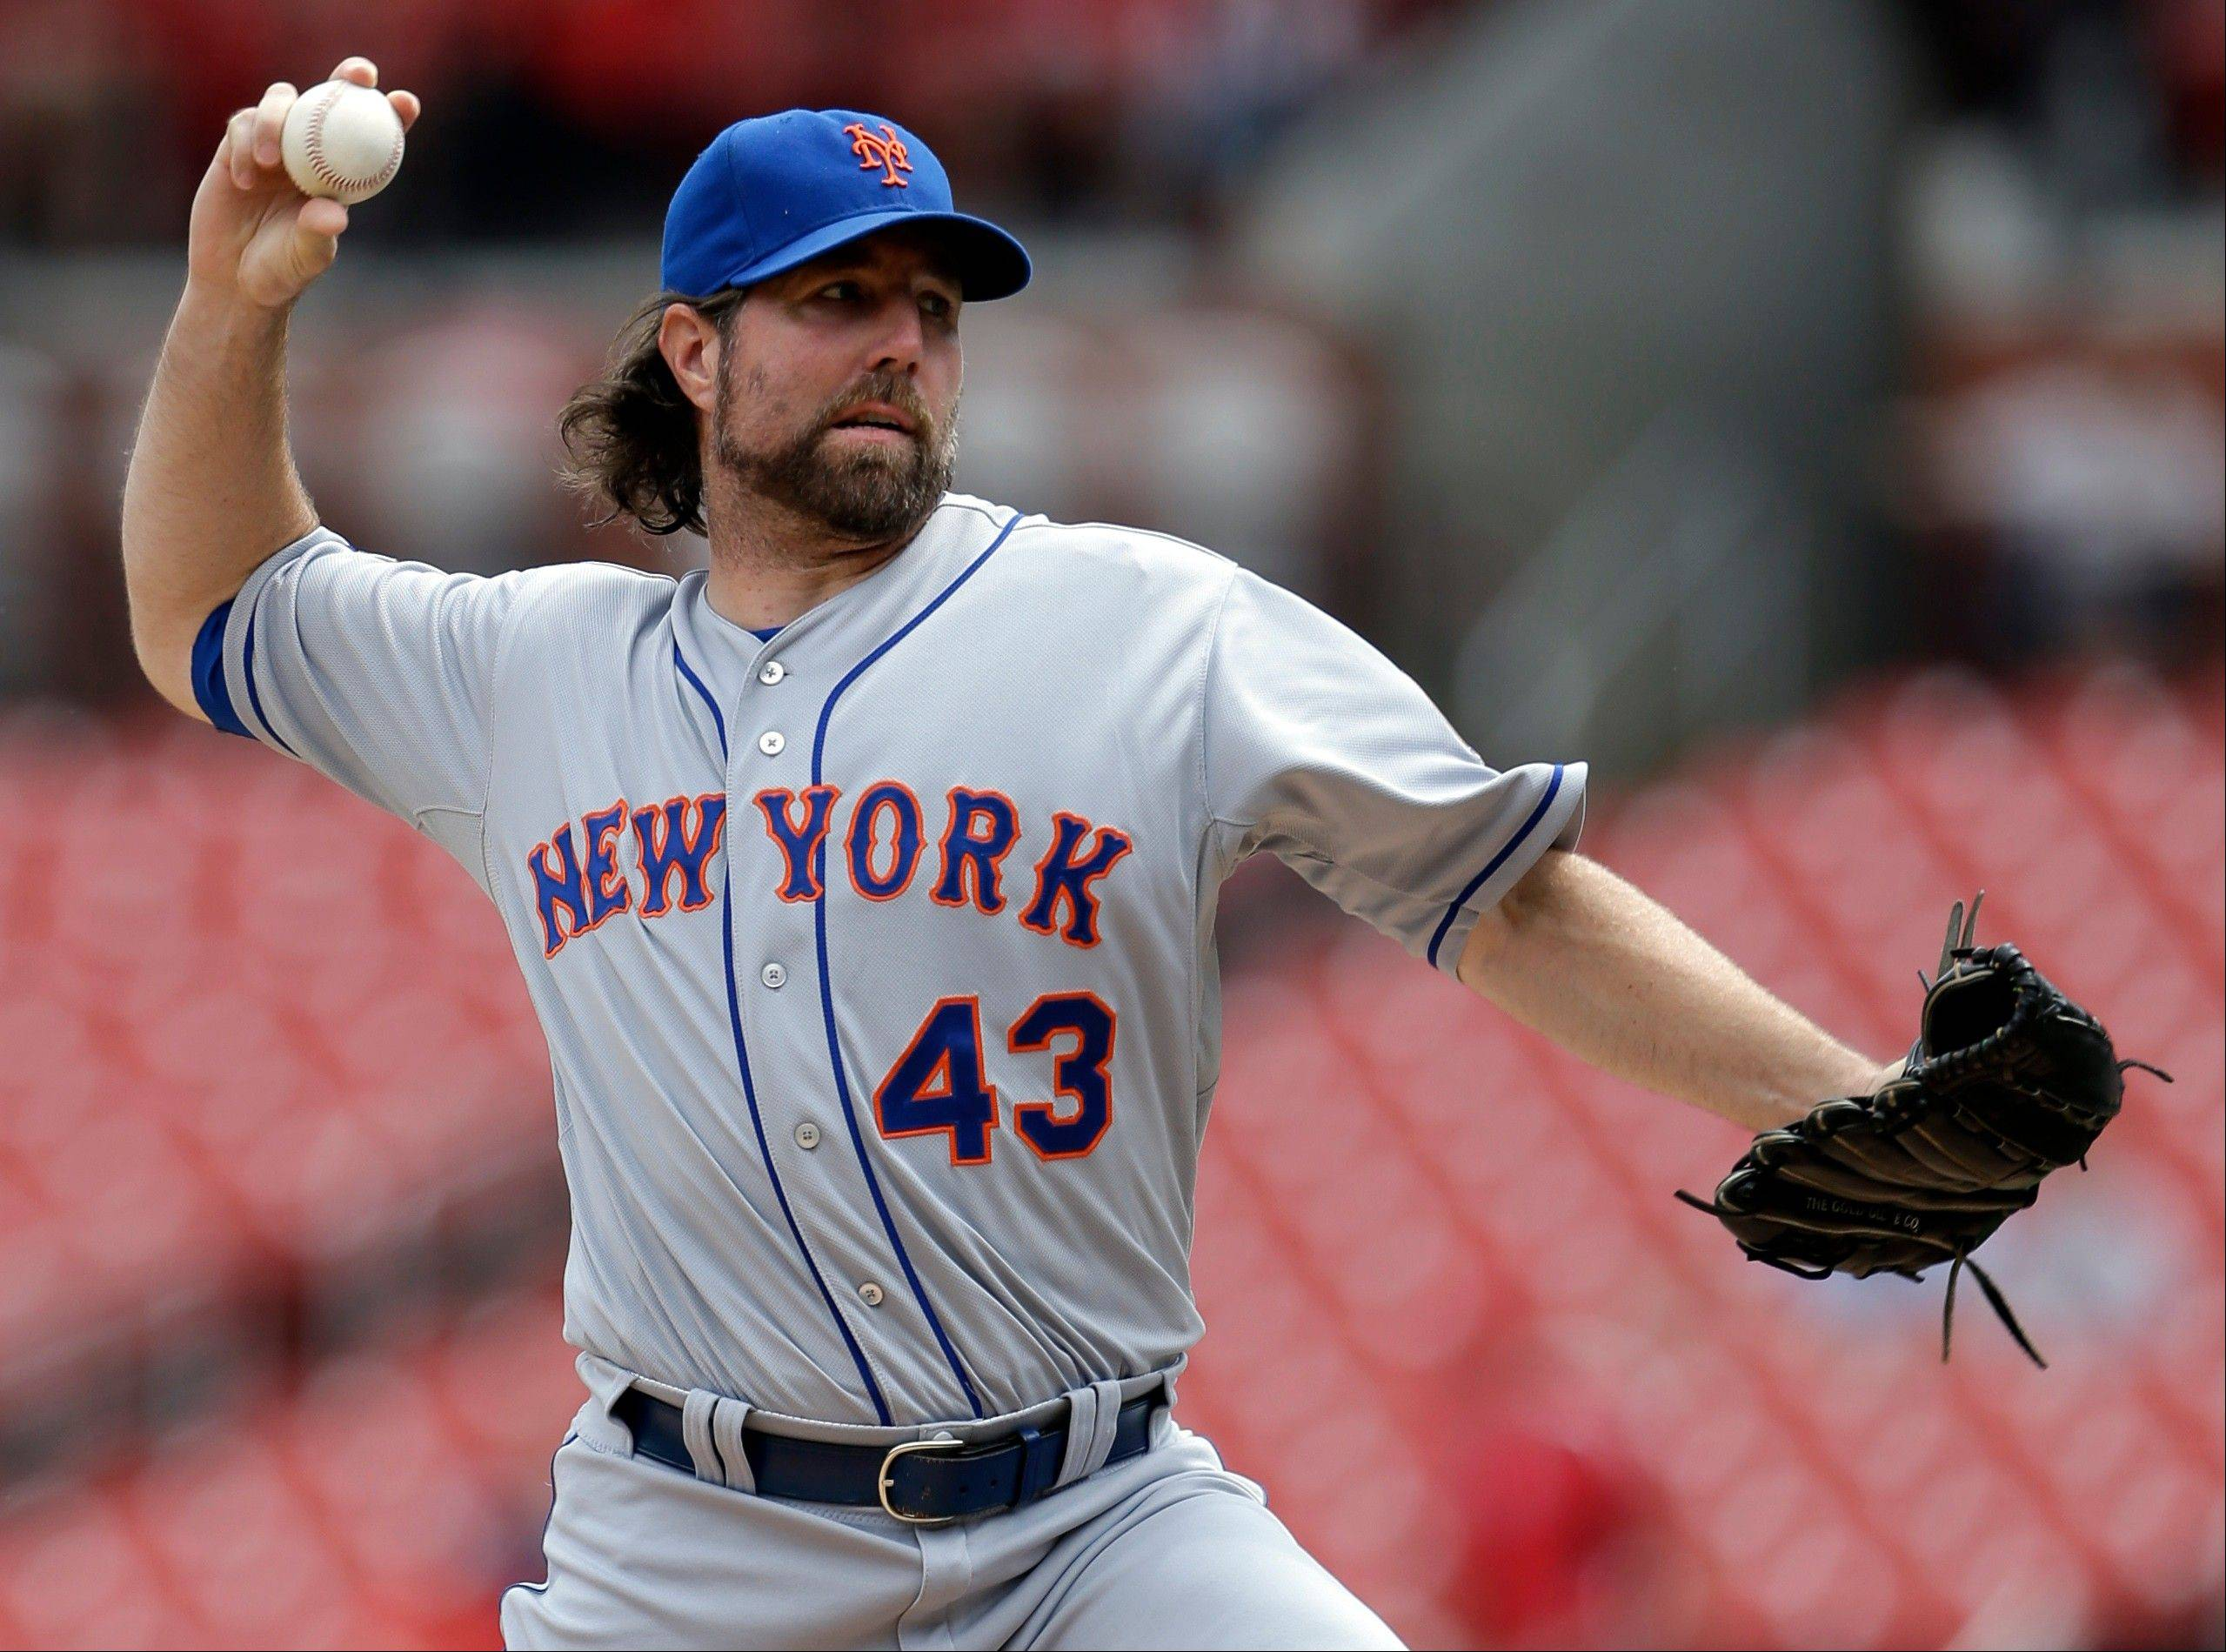 Mets starting pitcher R.A. Dickey allowed two runs in 6 2-3 innings en route to his 18th win Wednesday in St. Louis.